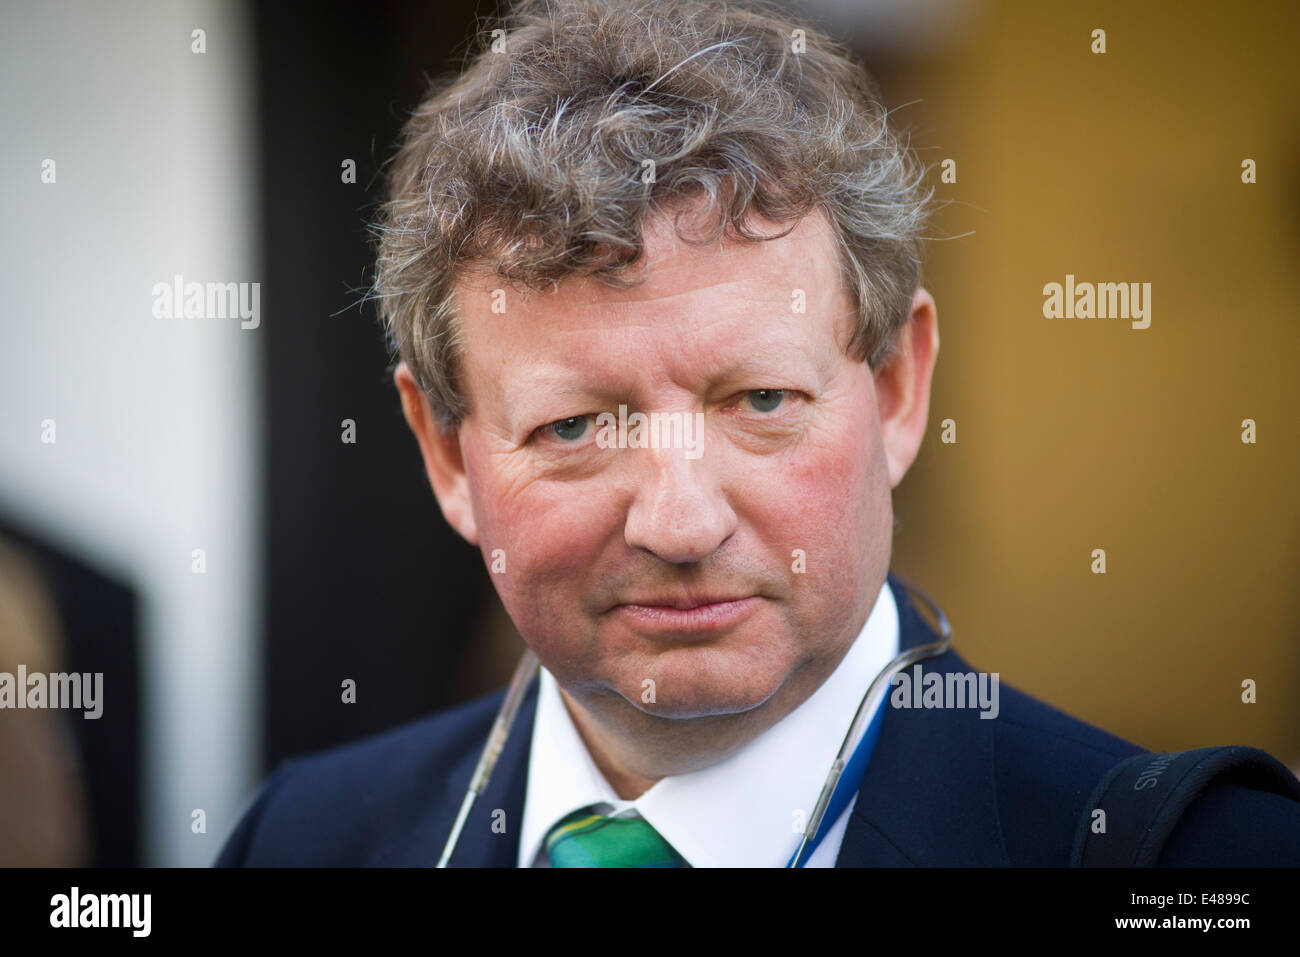 Racehorse trainer Mark Johnston at Newmarket - Stock Image